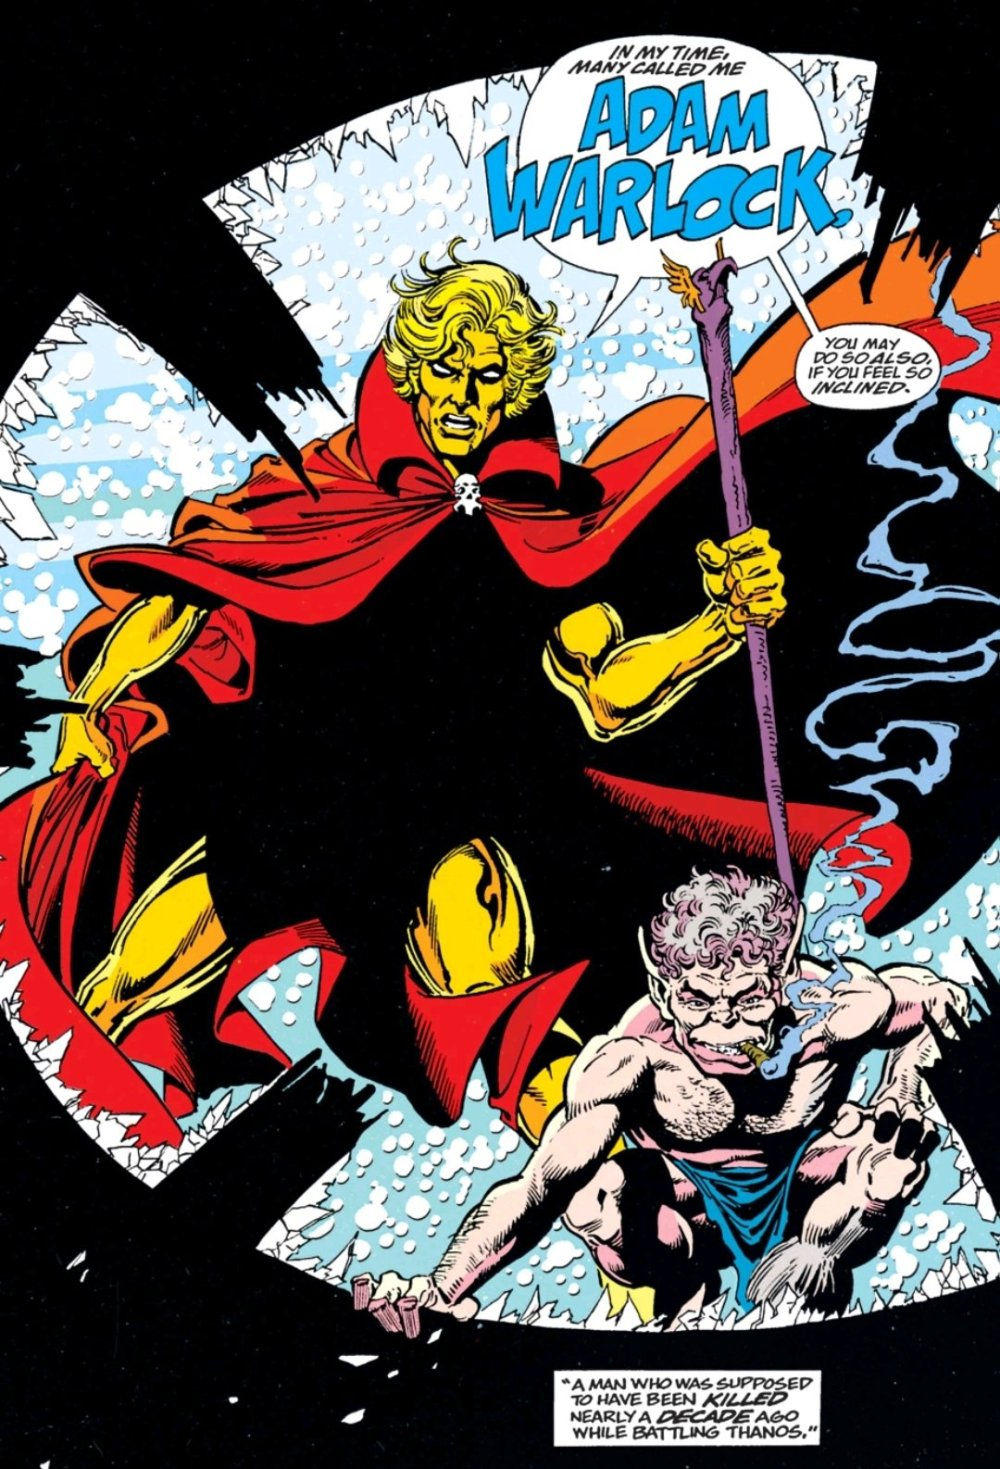 Adam Warlock, jerk face